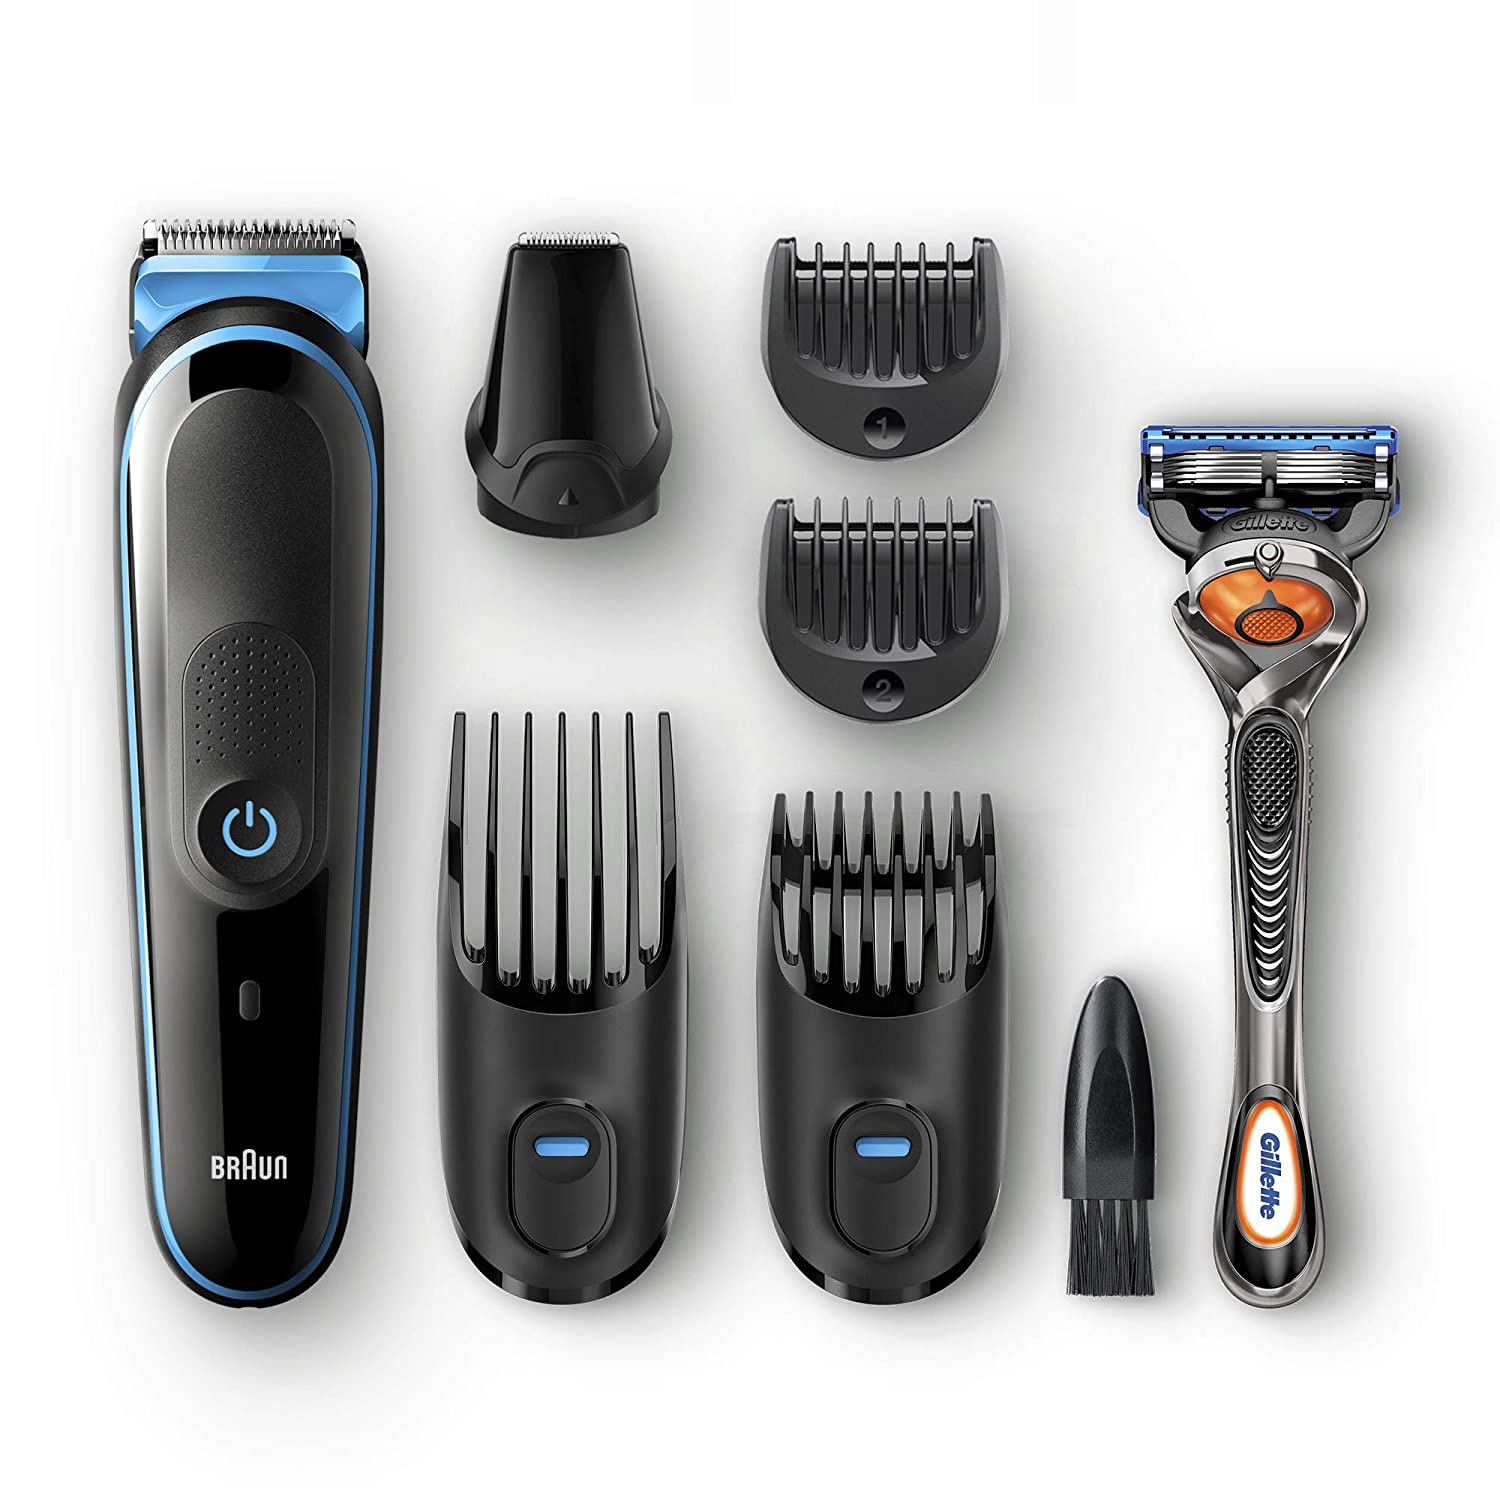 Braun 7-in-1 Beard Trimmer & Hair Clipper, All-In-One Manscaping Trimmer MGK5045, 13 length settings with only 4 combs, Detail Trimmer Attachment, Black/Blue